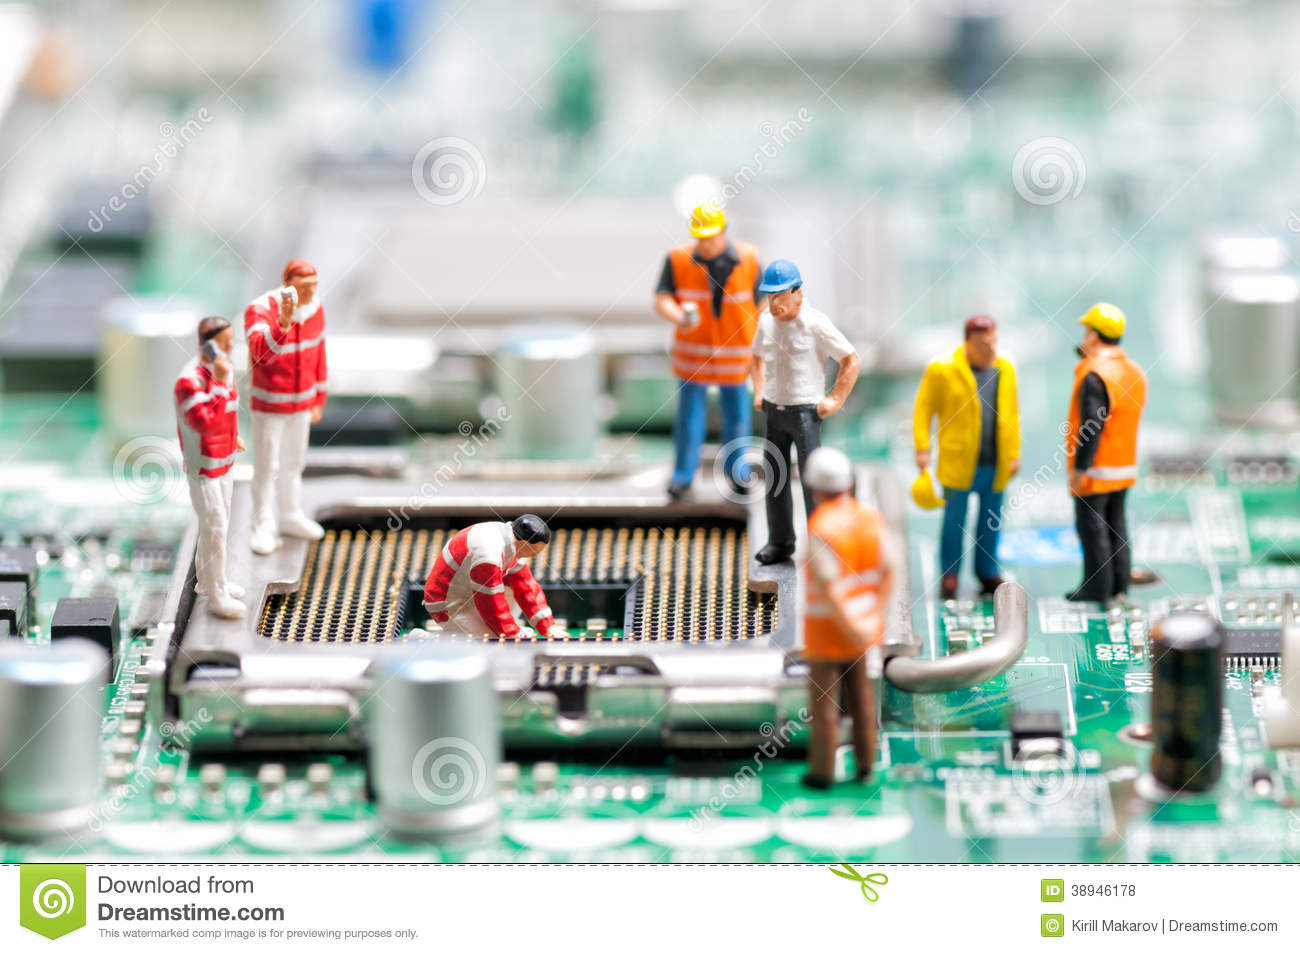 team of engineers repairing circuit board stock photo image of rh dreamstime com circuit board engineering firms in colorado circuit board engineering firms in colorado